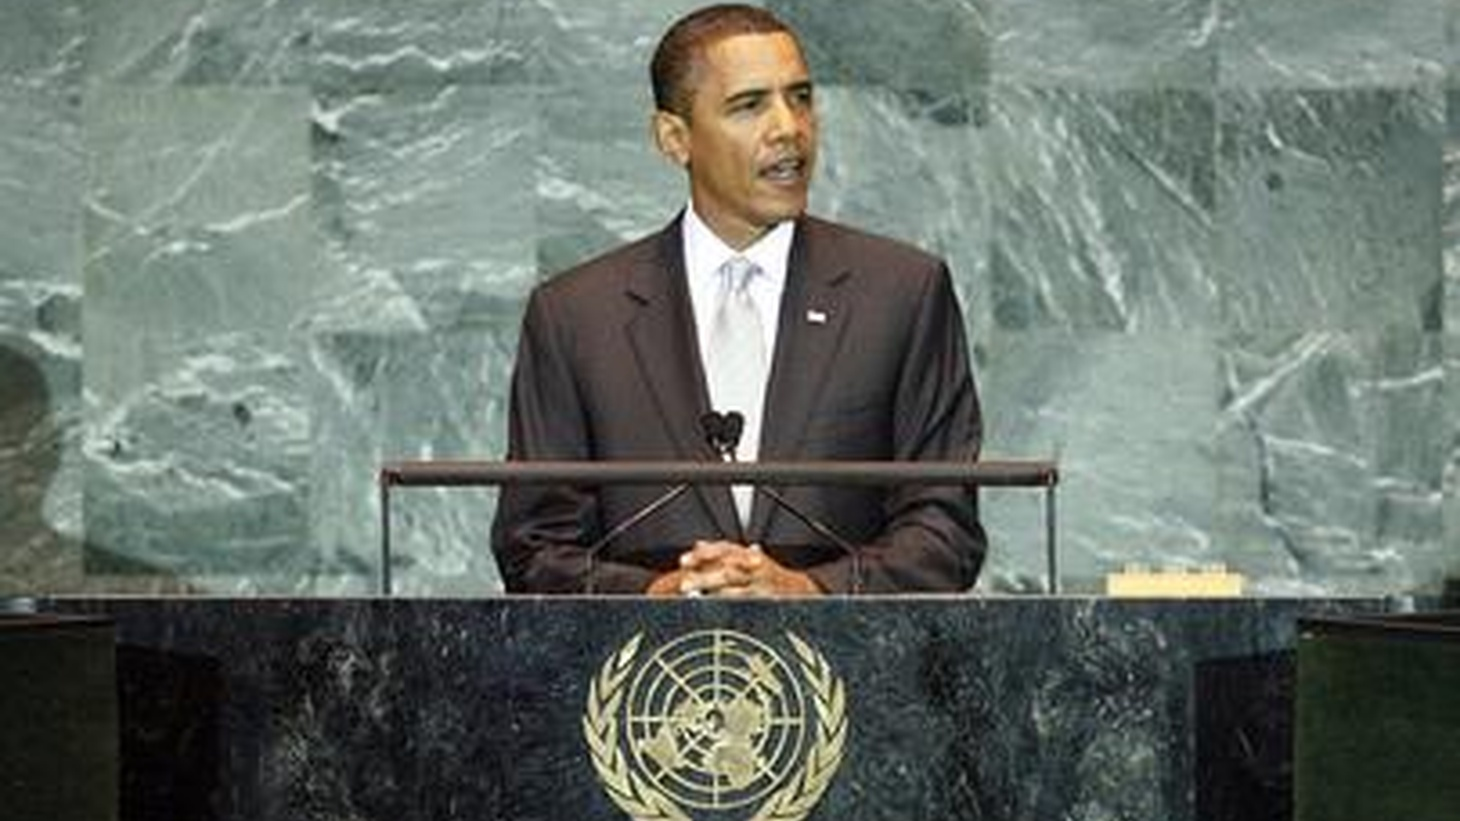 On his first day at the United Nations, Barack Obama addressed a multitude of issues, starting with climate change. Can he help set the stage for international action? Is it already too late to prevent life-changing developments all over the world? Also, Obama urges Netanyahu and Abbas to restart Israeli-Palestinian negotiations, and new rules for net neutrality.